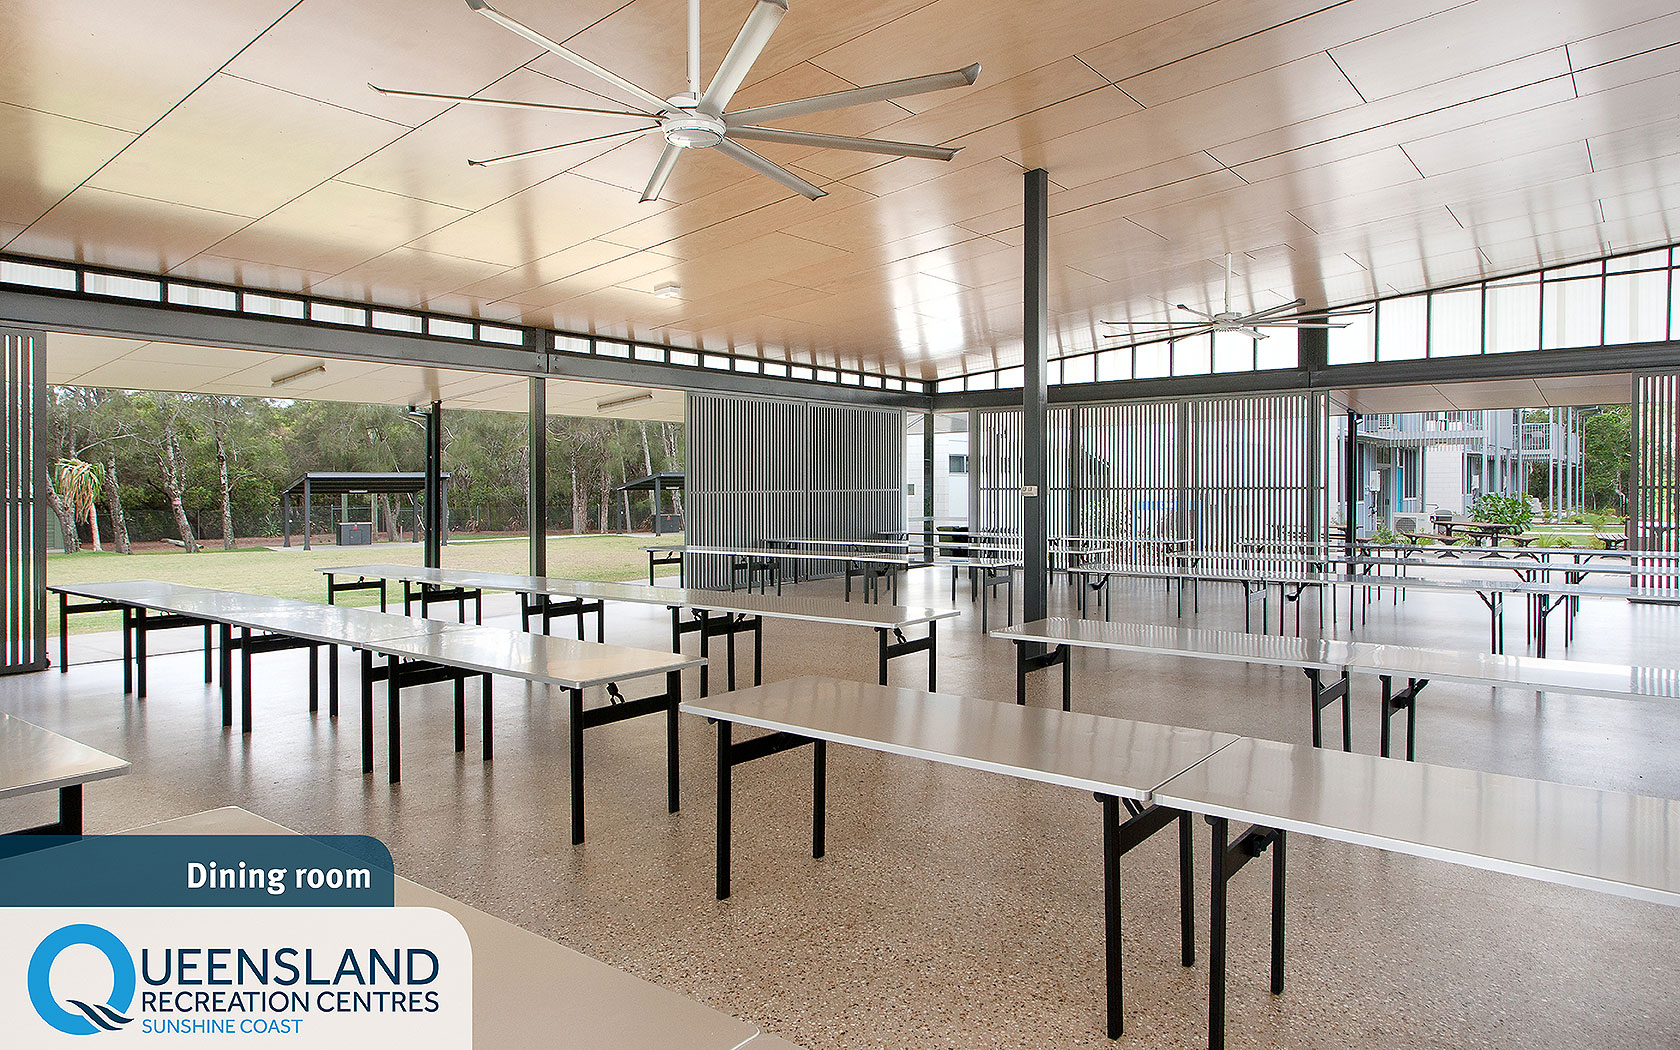 Spacious open dining area with group tables and fans at the Sunshine Coast Recreation Centre